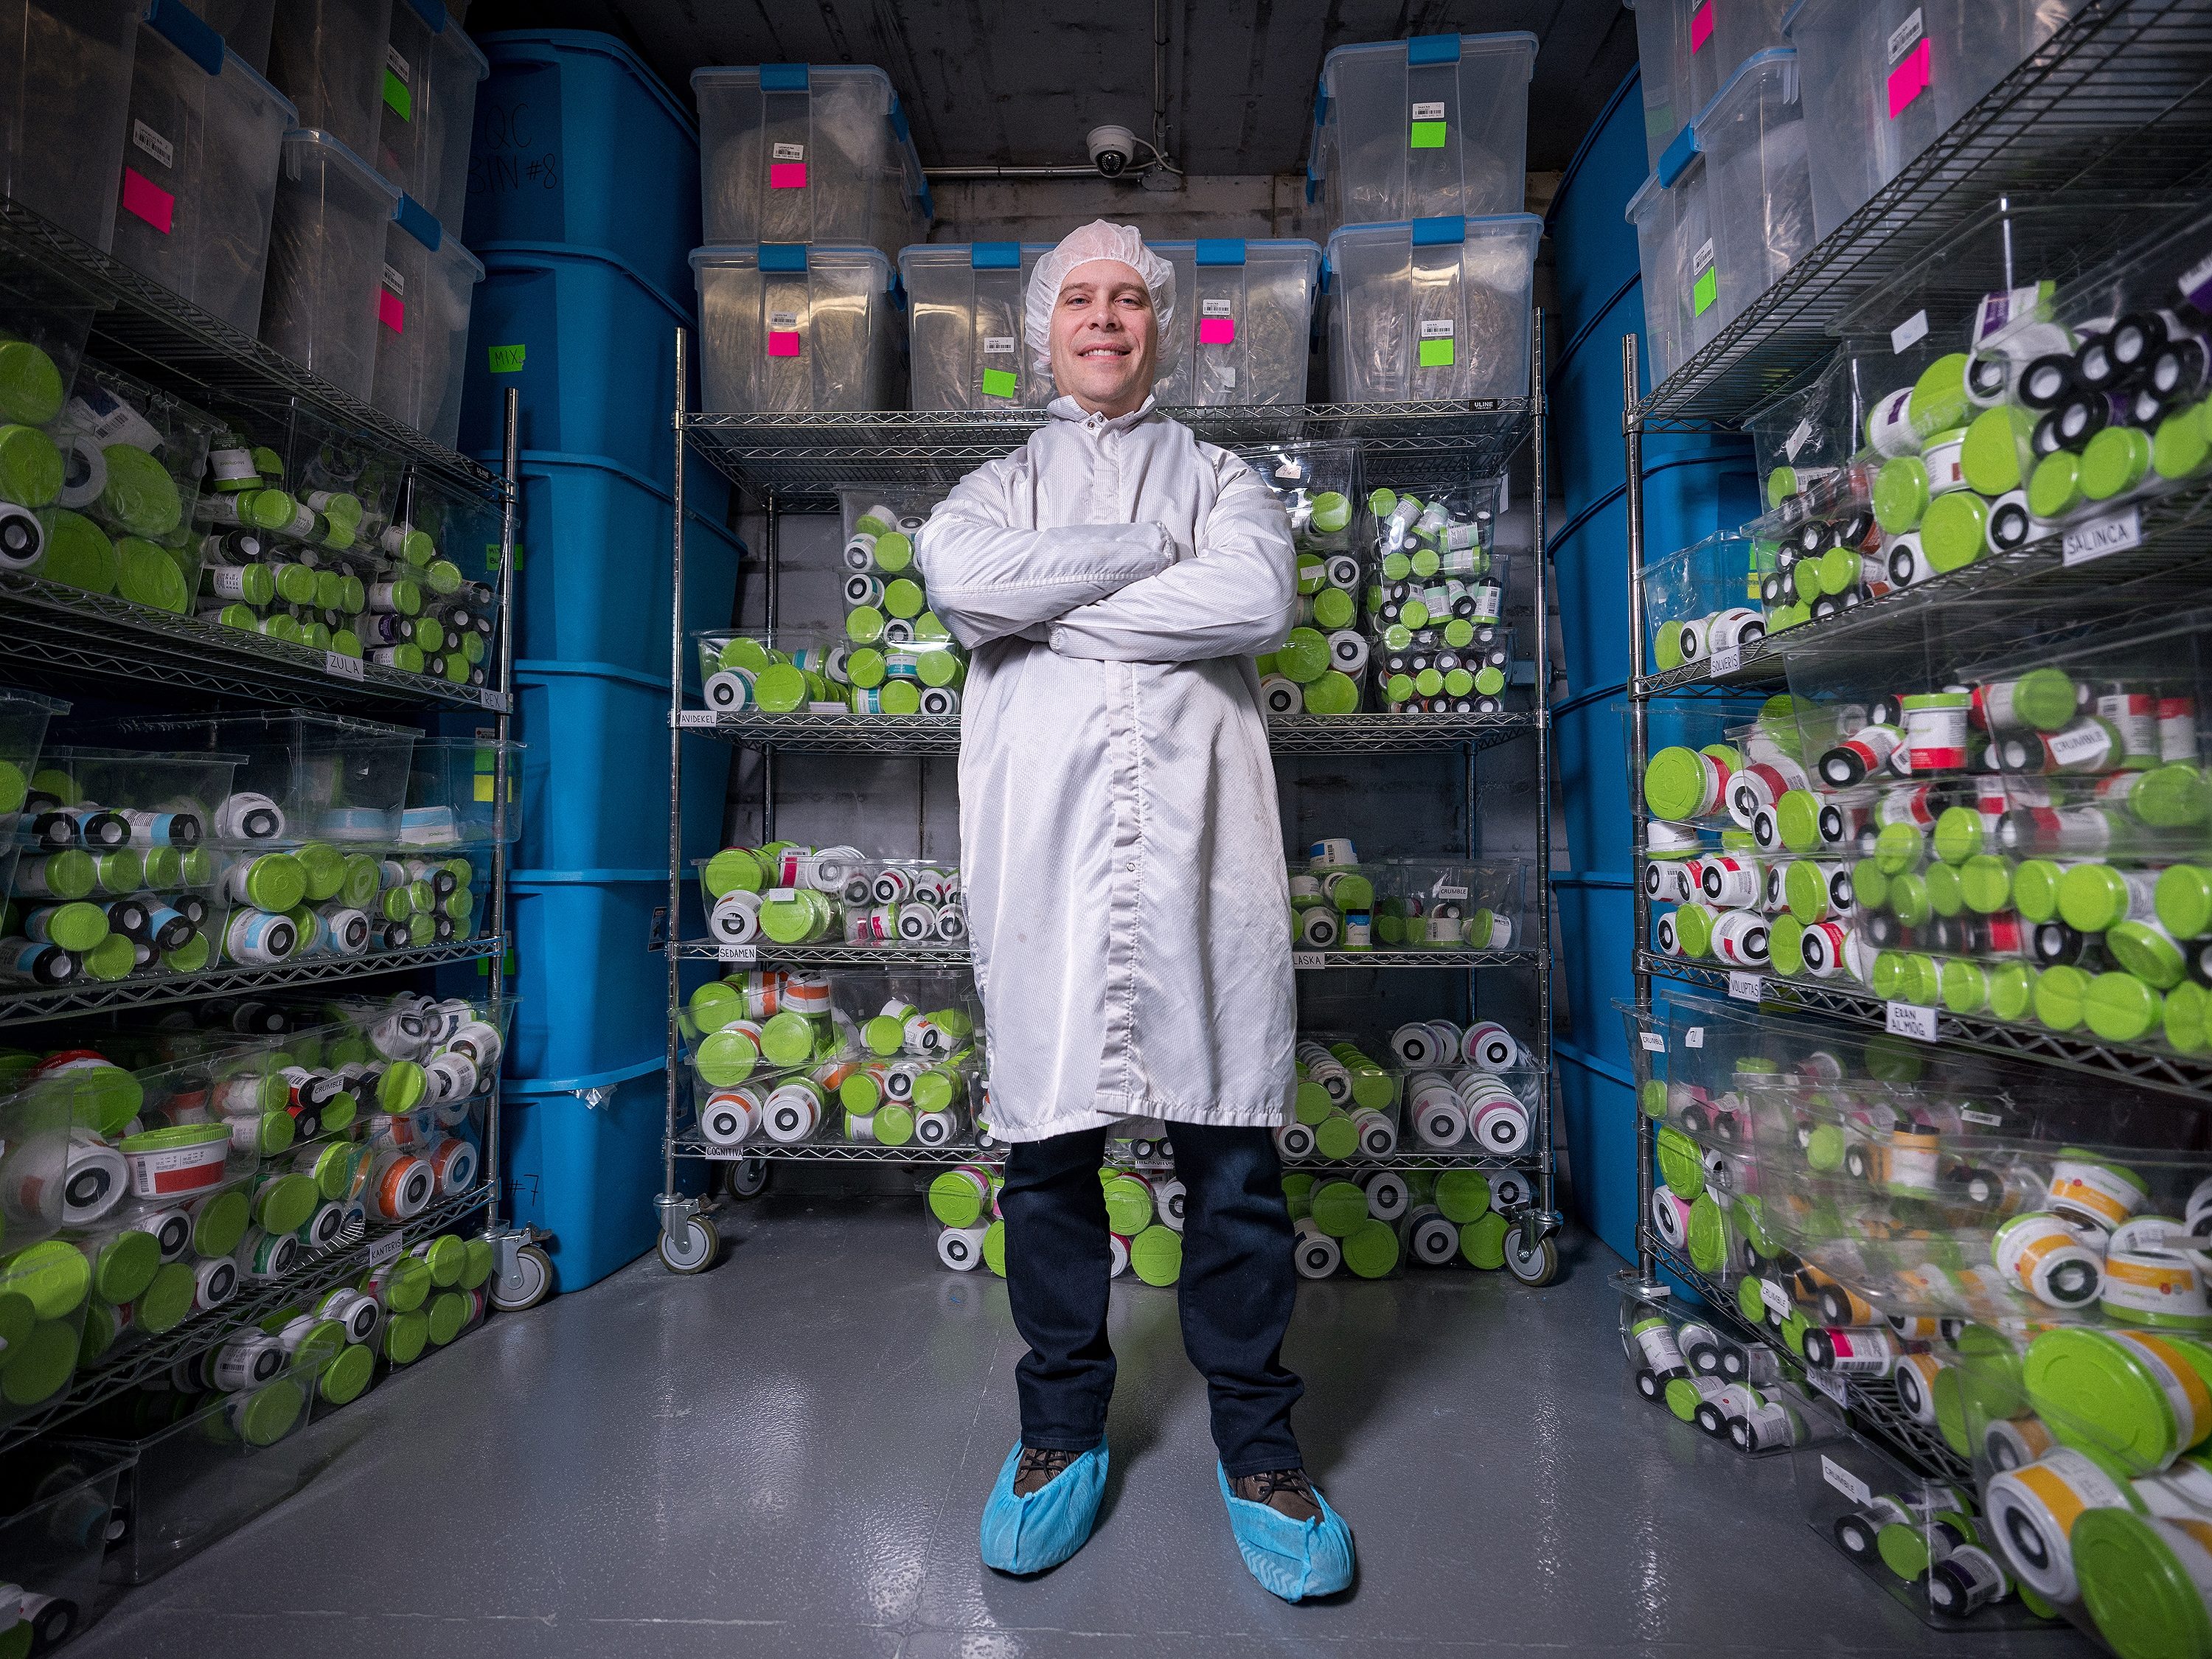 Neil Closner, CEO of Markham, Ont.-based MedReleaf, grew his marijuana business in partnership with an established Israeli medical research firm. (Evan Mitsui/CBC)